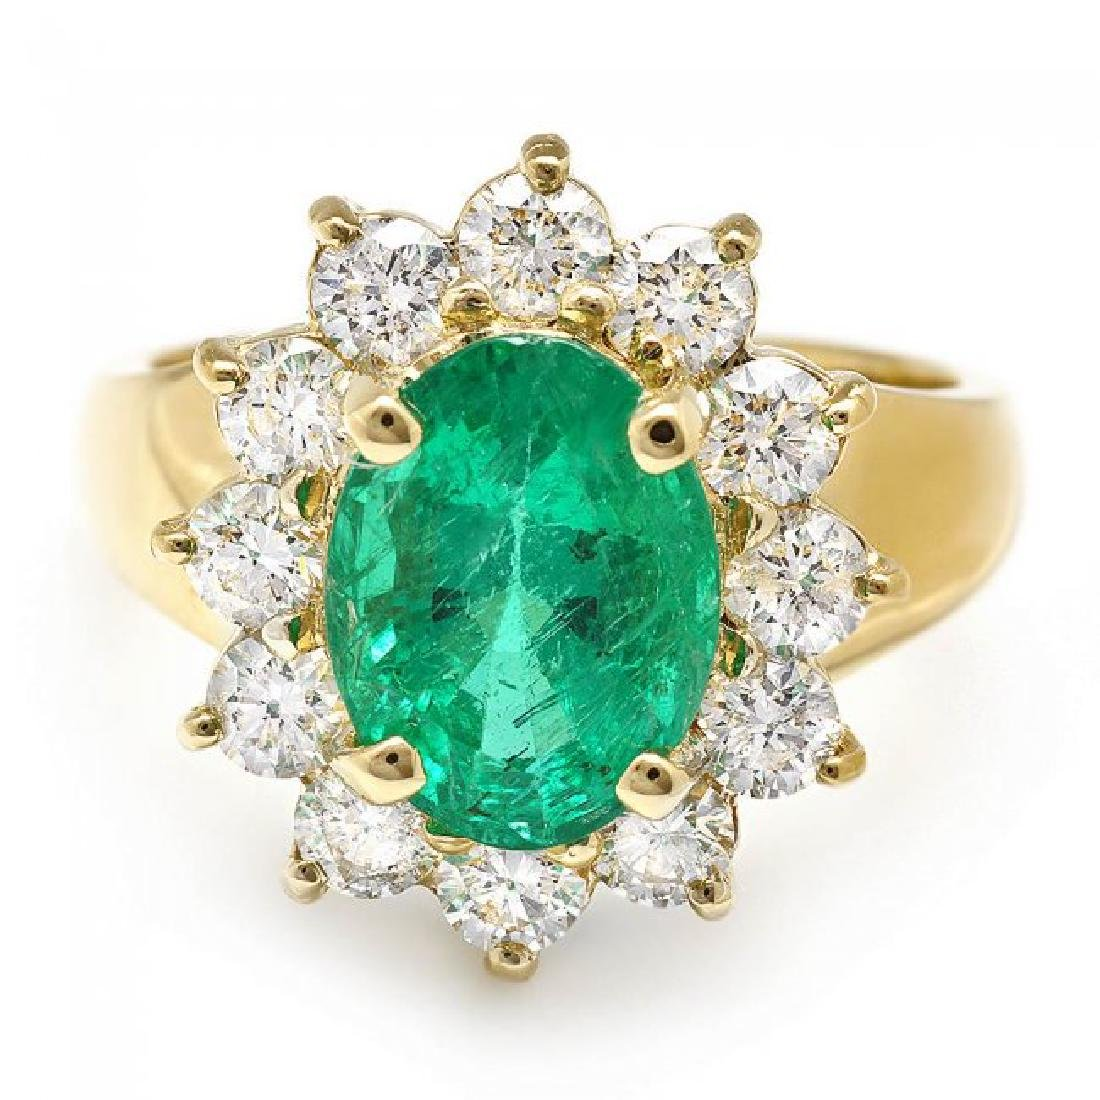 14k Gold 2.70ct Emerald 1.30ct Diamond Ring - 2